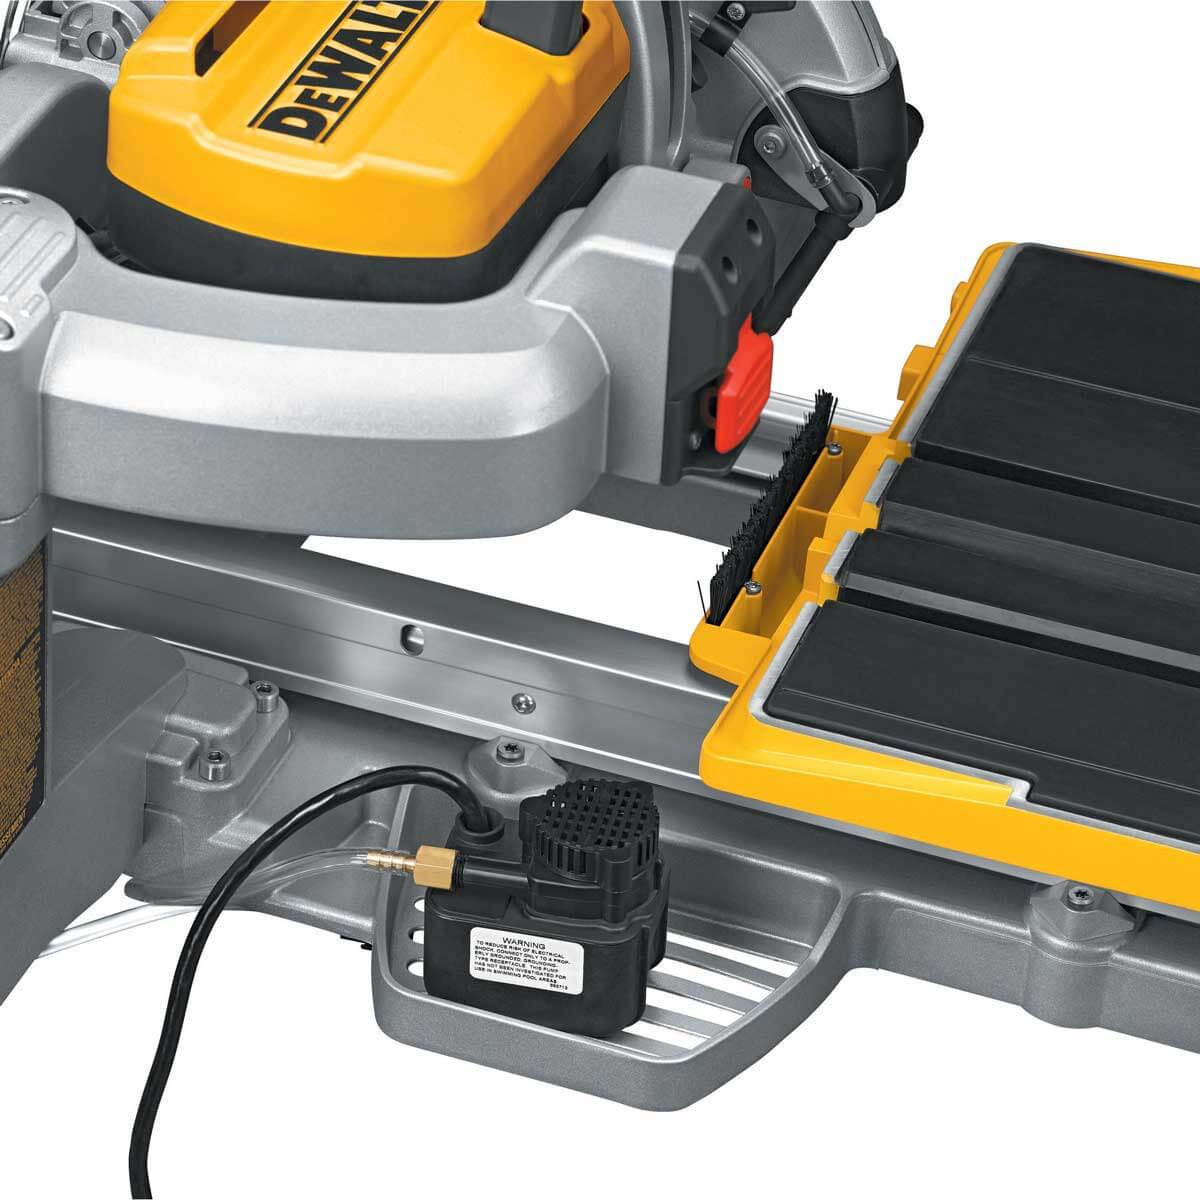 dewalt d24000 water pump transport